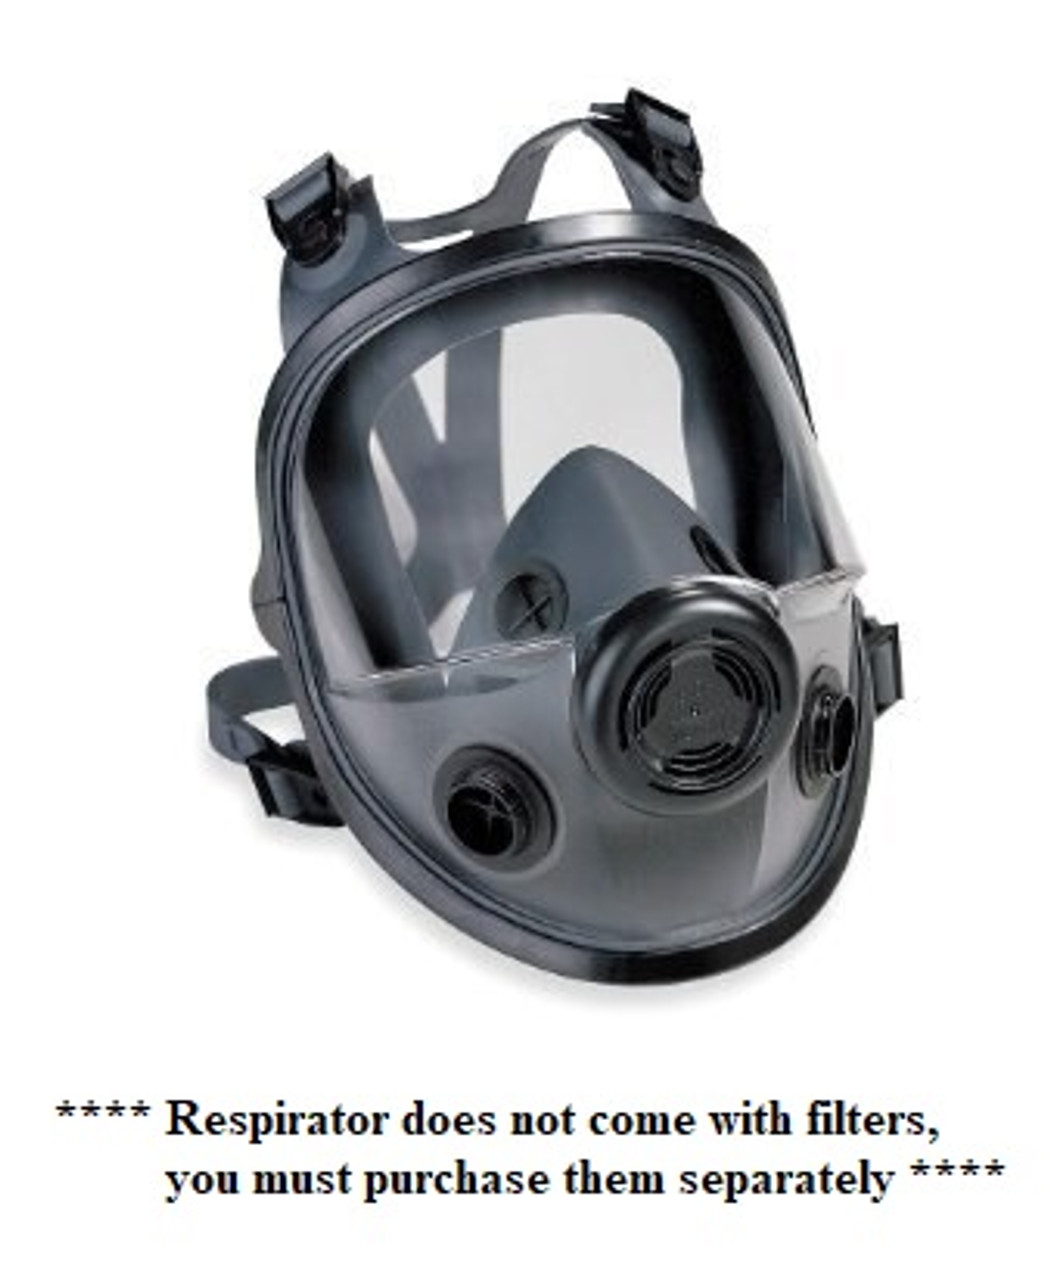 NORTH® 5400 Series Dual Cartridge Respirators  ## NOS54001 ##